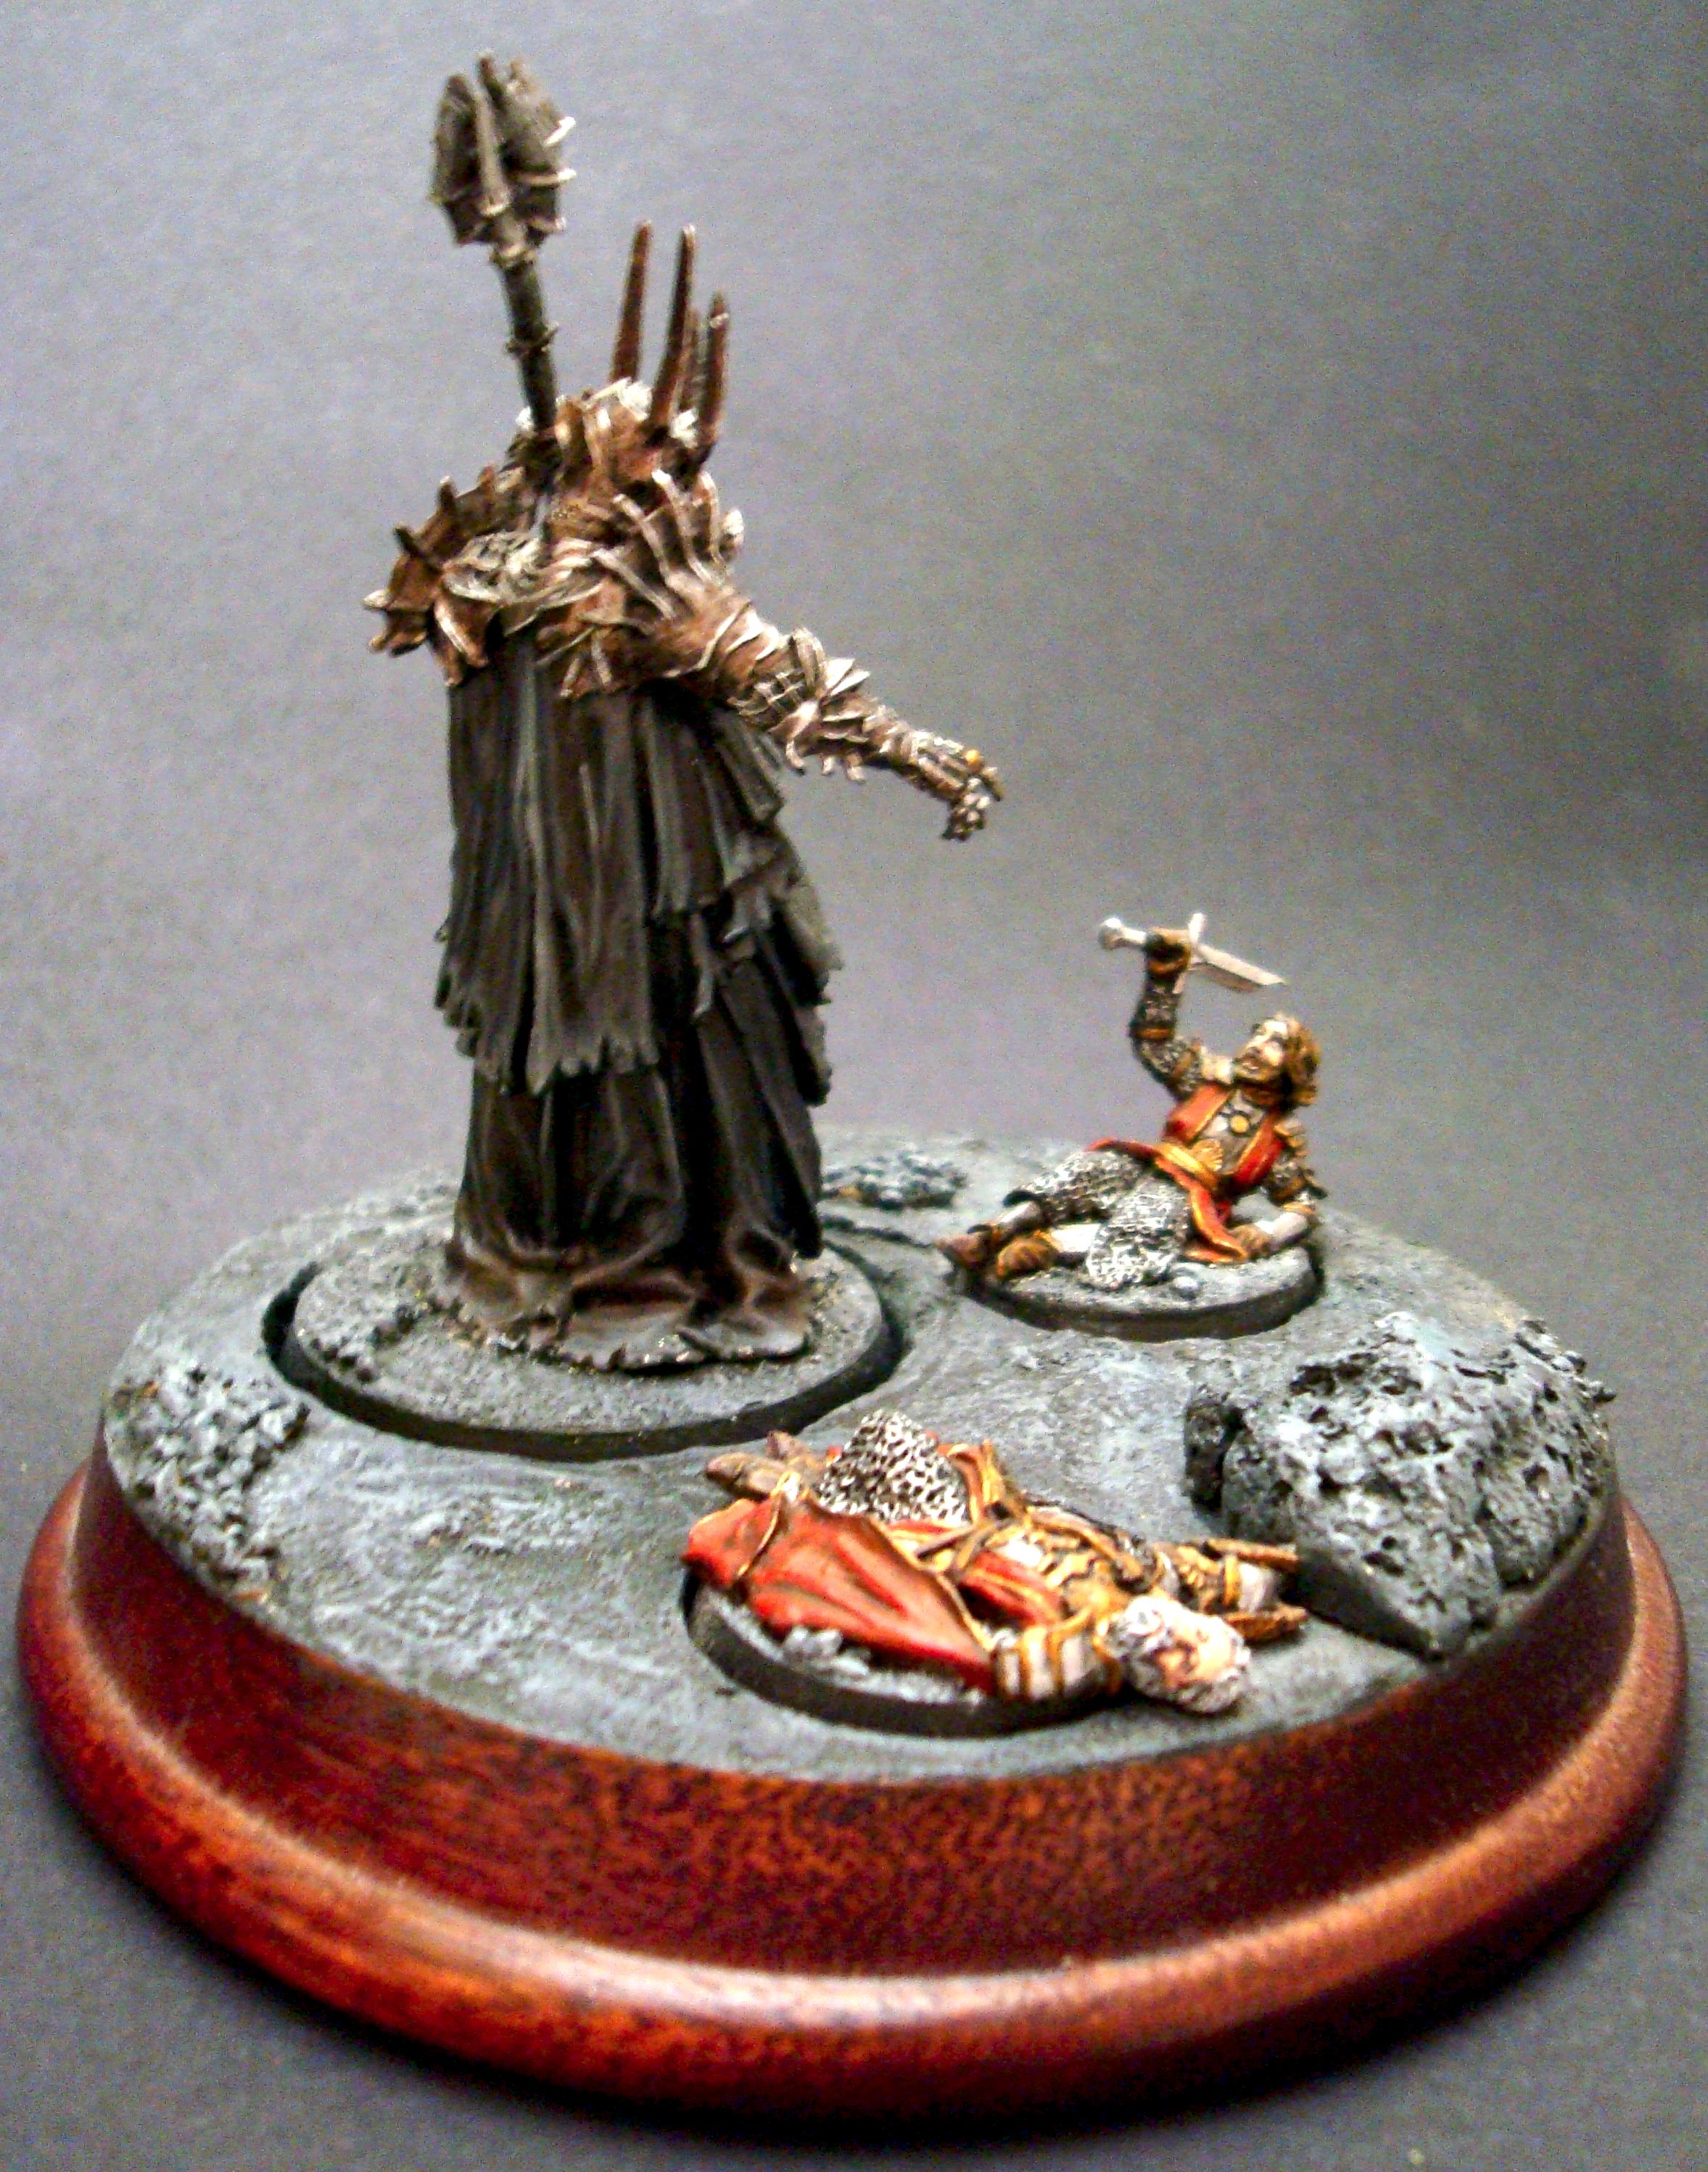 Diorama, Lord Of The Rings, Sauron